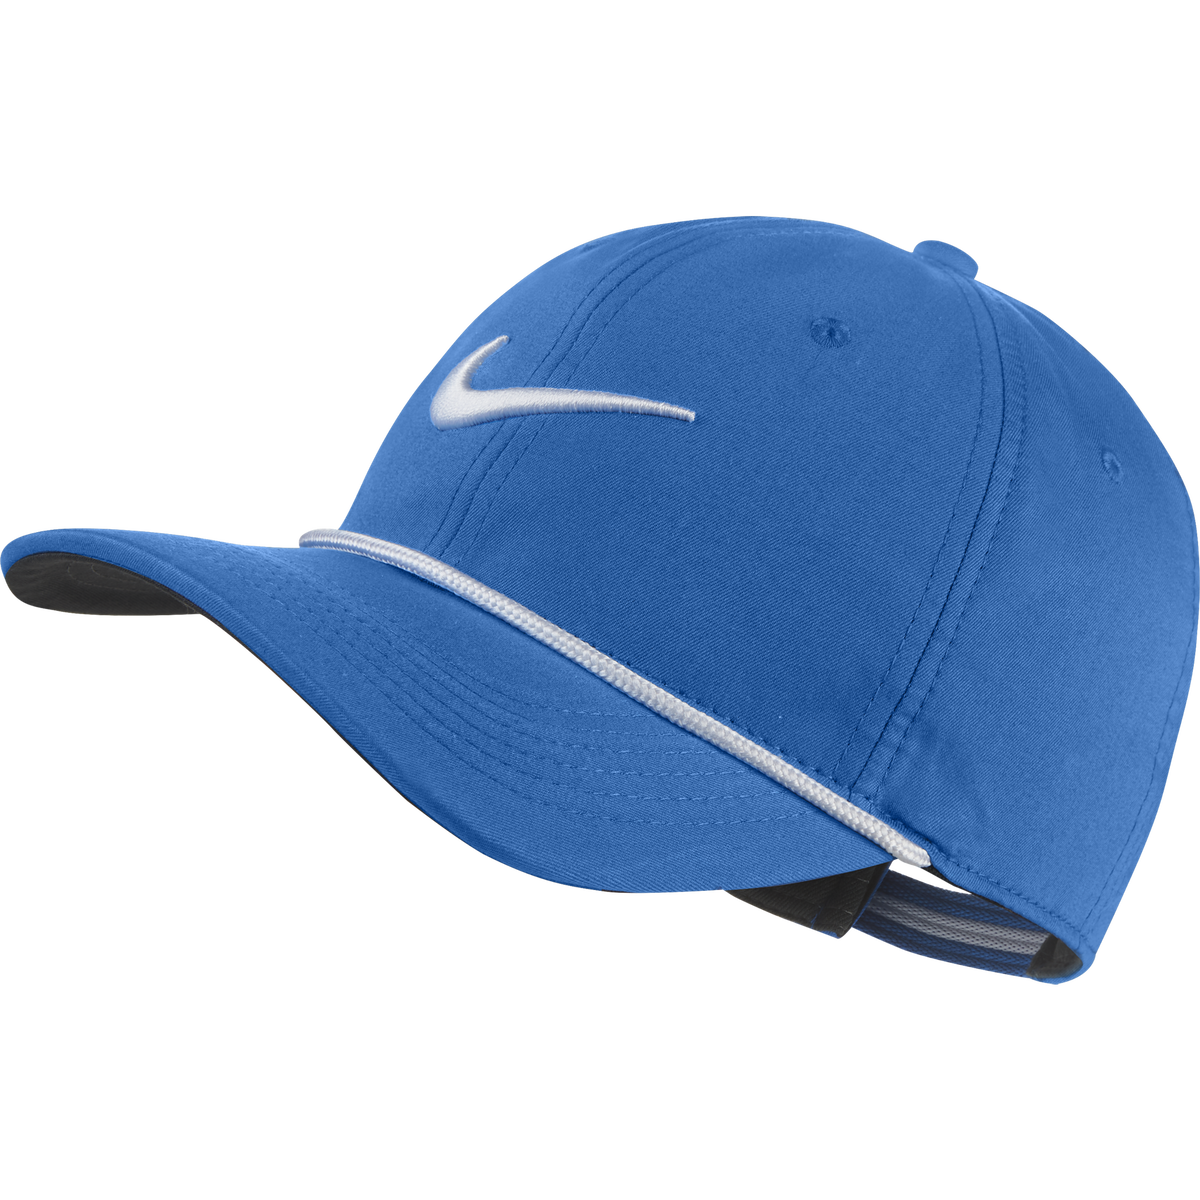 4d2a02744b9e6 Images. Nike Aerobill Classic99 Golf Hat